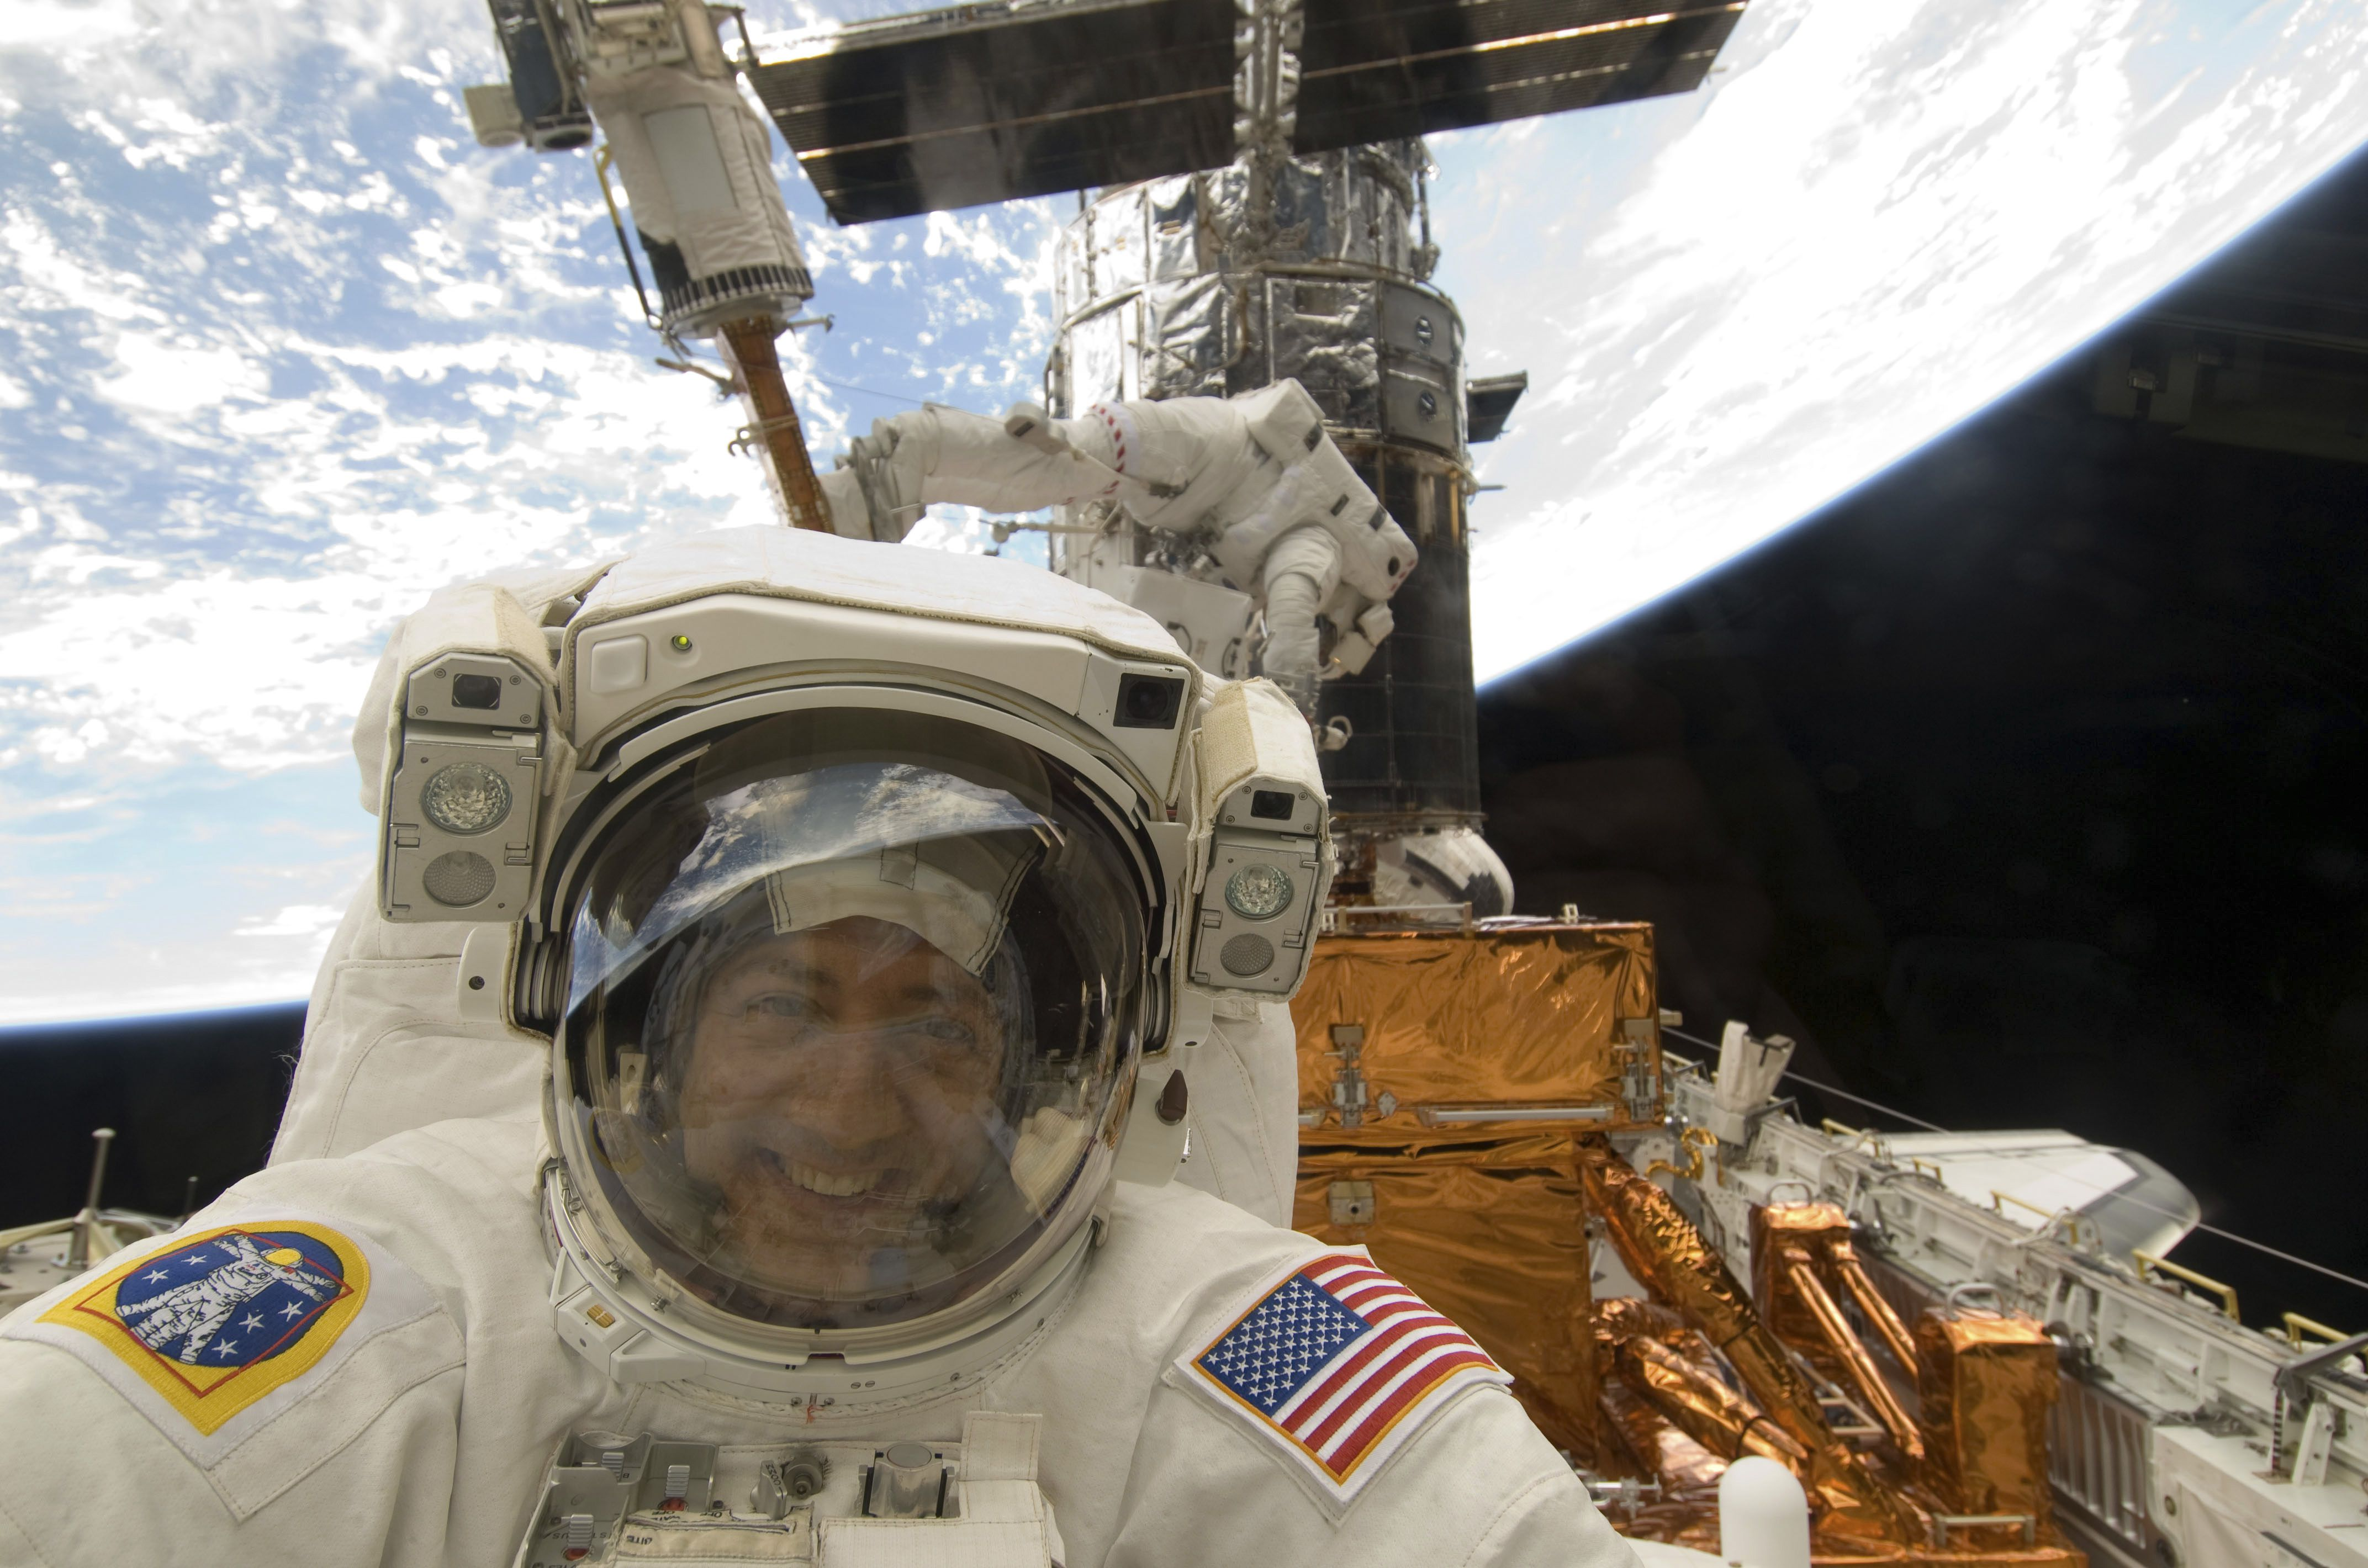 NASA astronaut Mike Massimino, STS-125 mission specialist, is pictured as he peers through a window on the aft flight deck of the Earth-orbiting Space Shuttle Atlantis during the mission's fourth spacewalk to refurbish and upgrade the Hubble Space Telescope on May 17, 2009. During the eight-hour, two-minute spacewalk, Massimino and astronaut Michael Good (background), mission specialist, continued repairs and improvements to the Space Telescope Imaging Spectrograph (STIS) that will extend the Hubble's life into the next decade.  REUTERS/NASA/Handout  (UNITED STATES ENVIRONMENT SCI TECH) FOR EDITORIAL USE ONLY. NOT FOR SALE FOR MARKETING OR ADVERTISING CAMPAIGNS - RTXJJ1C